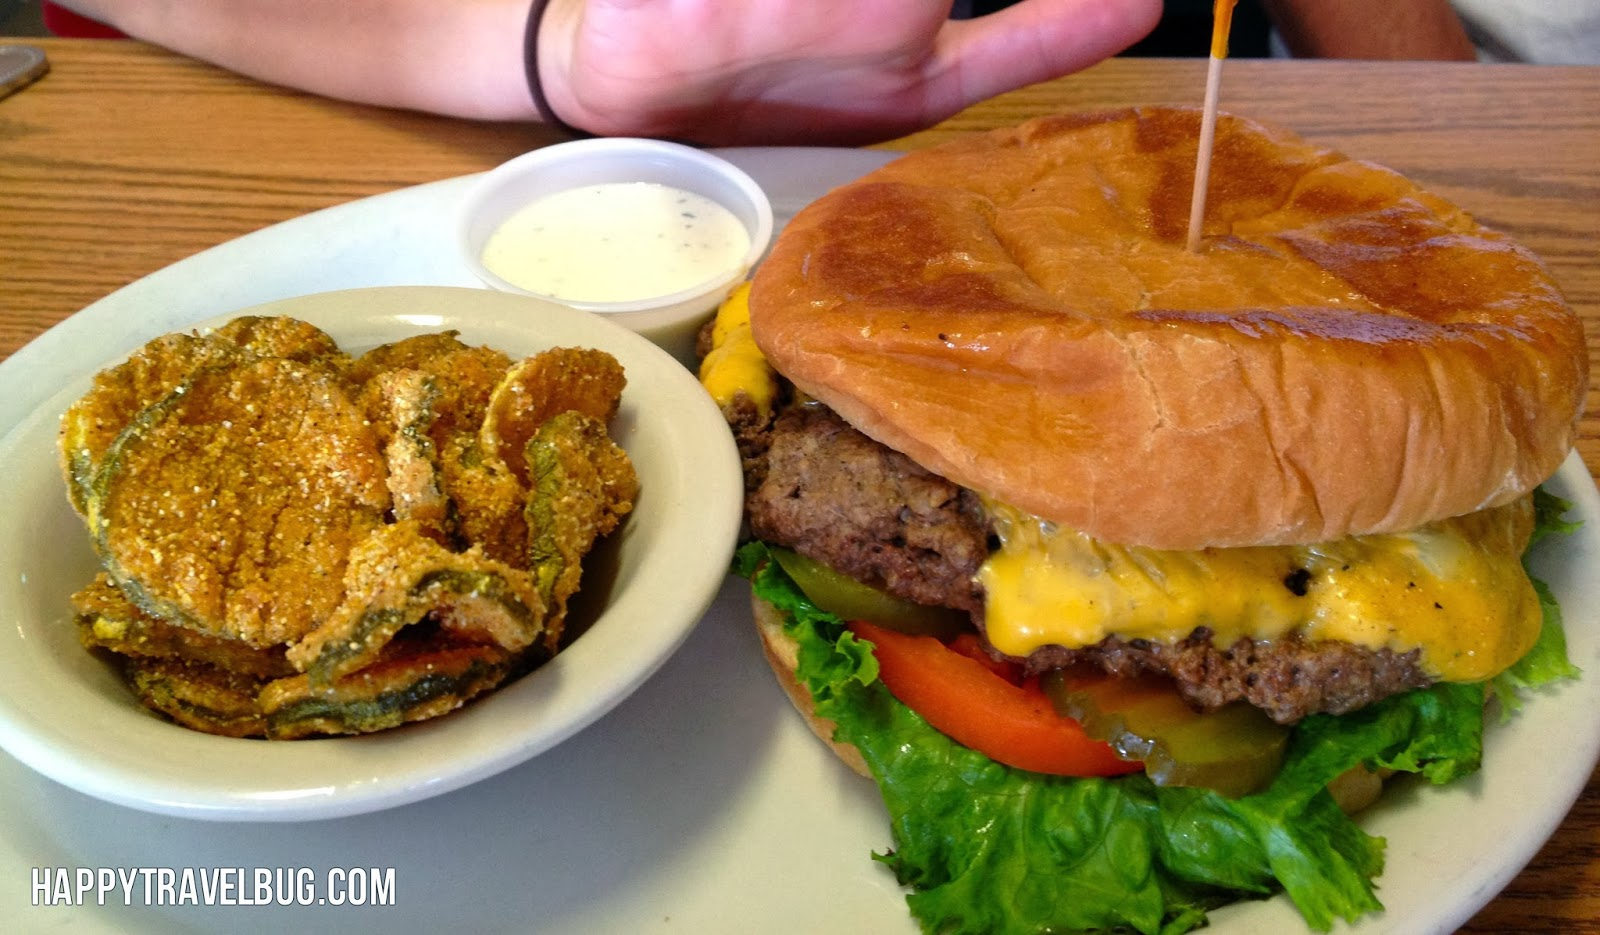 The hub cap hamburger and fried pickles at Cotham's in Arkansas